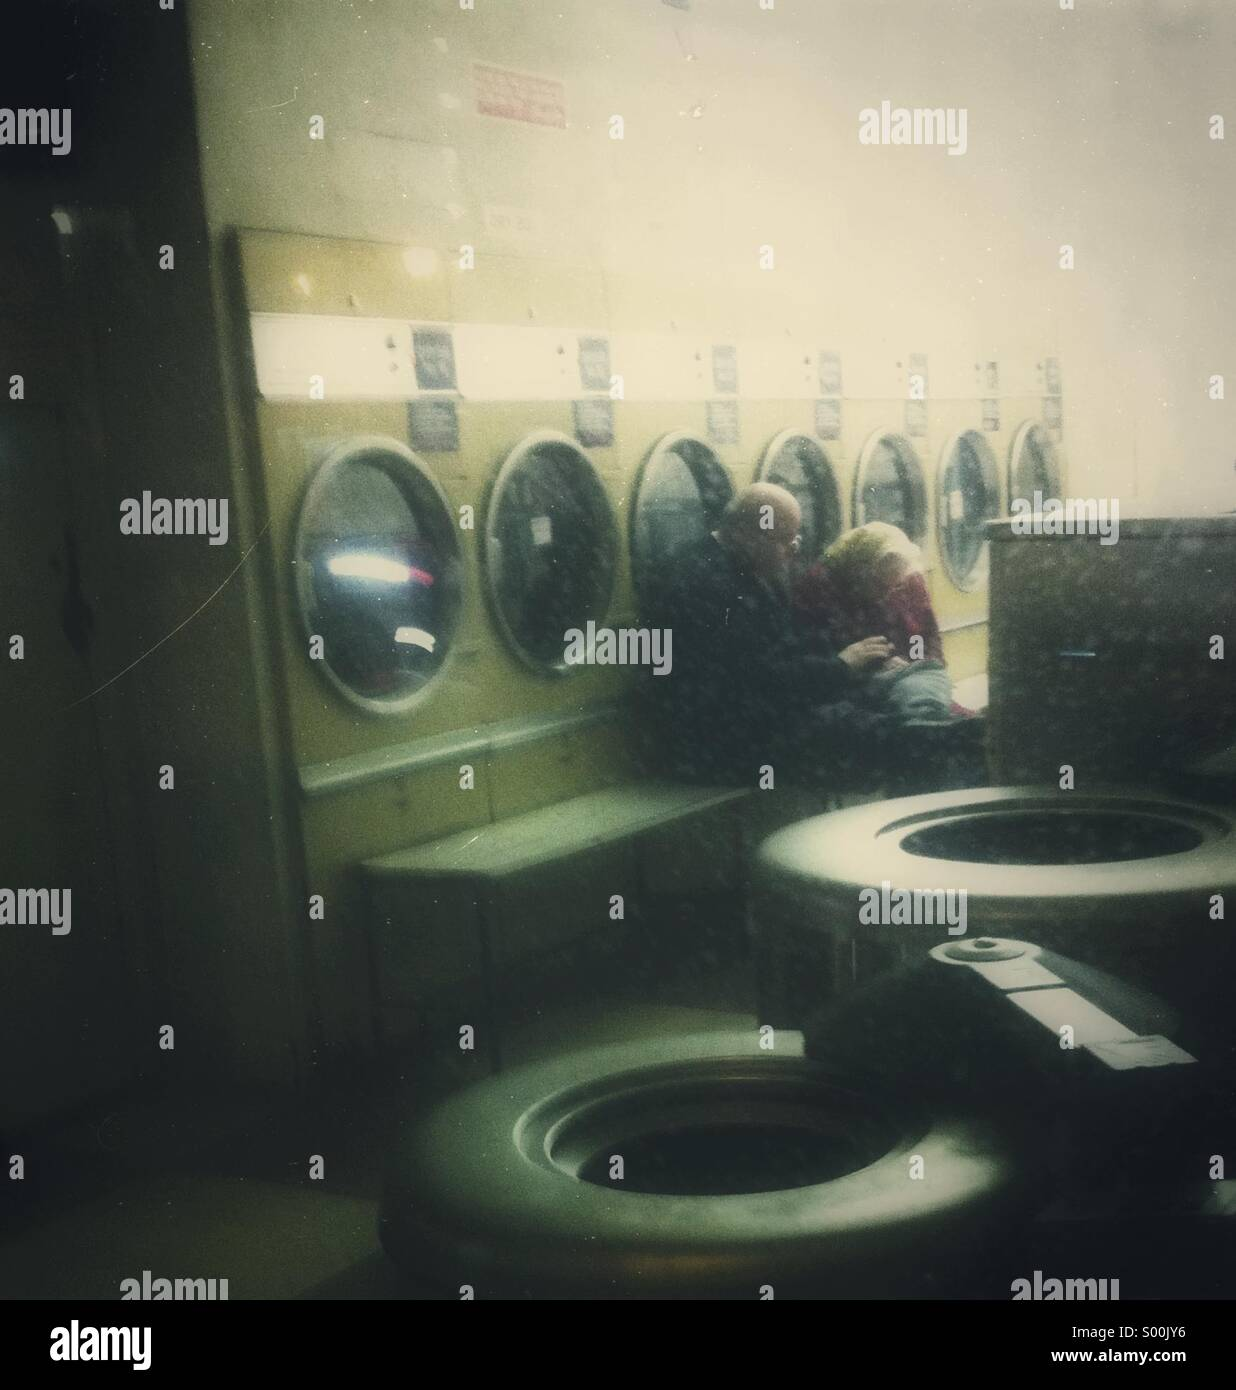 Couple sitting together in laundrette at night - Stock Image